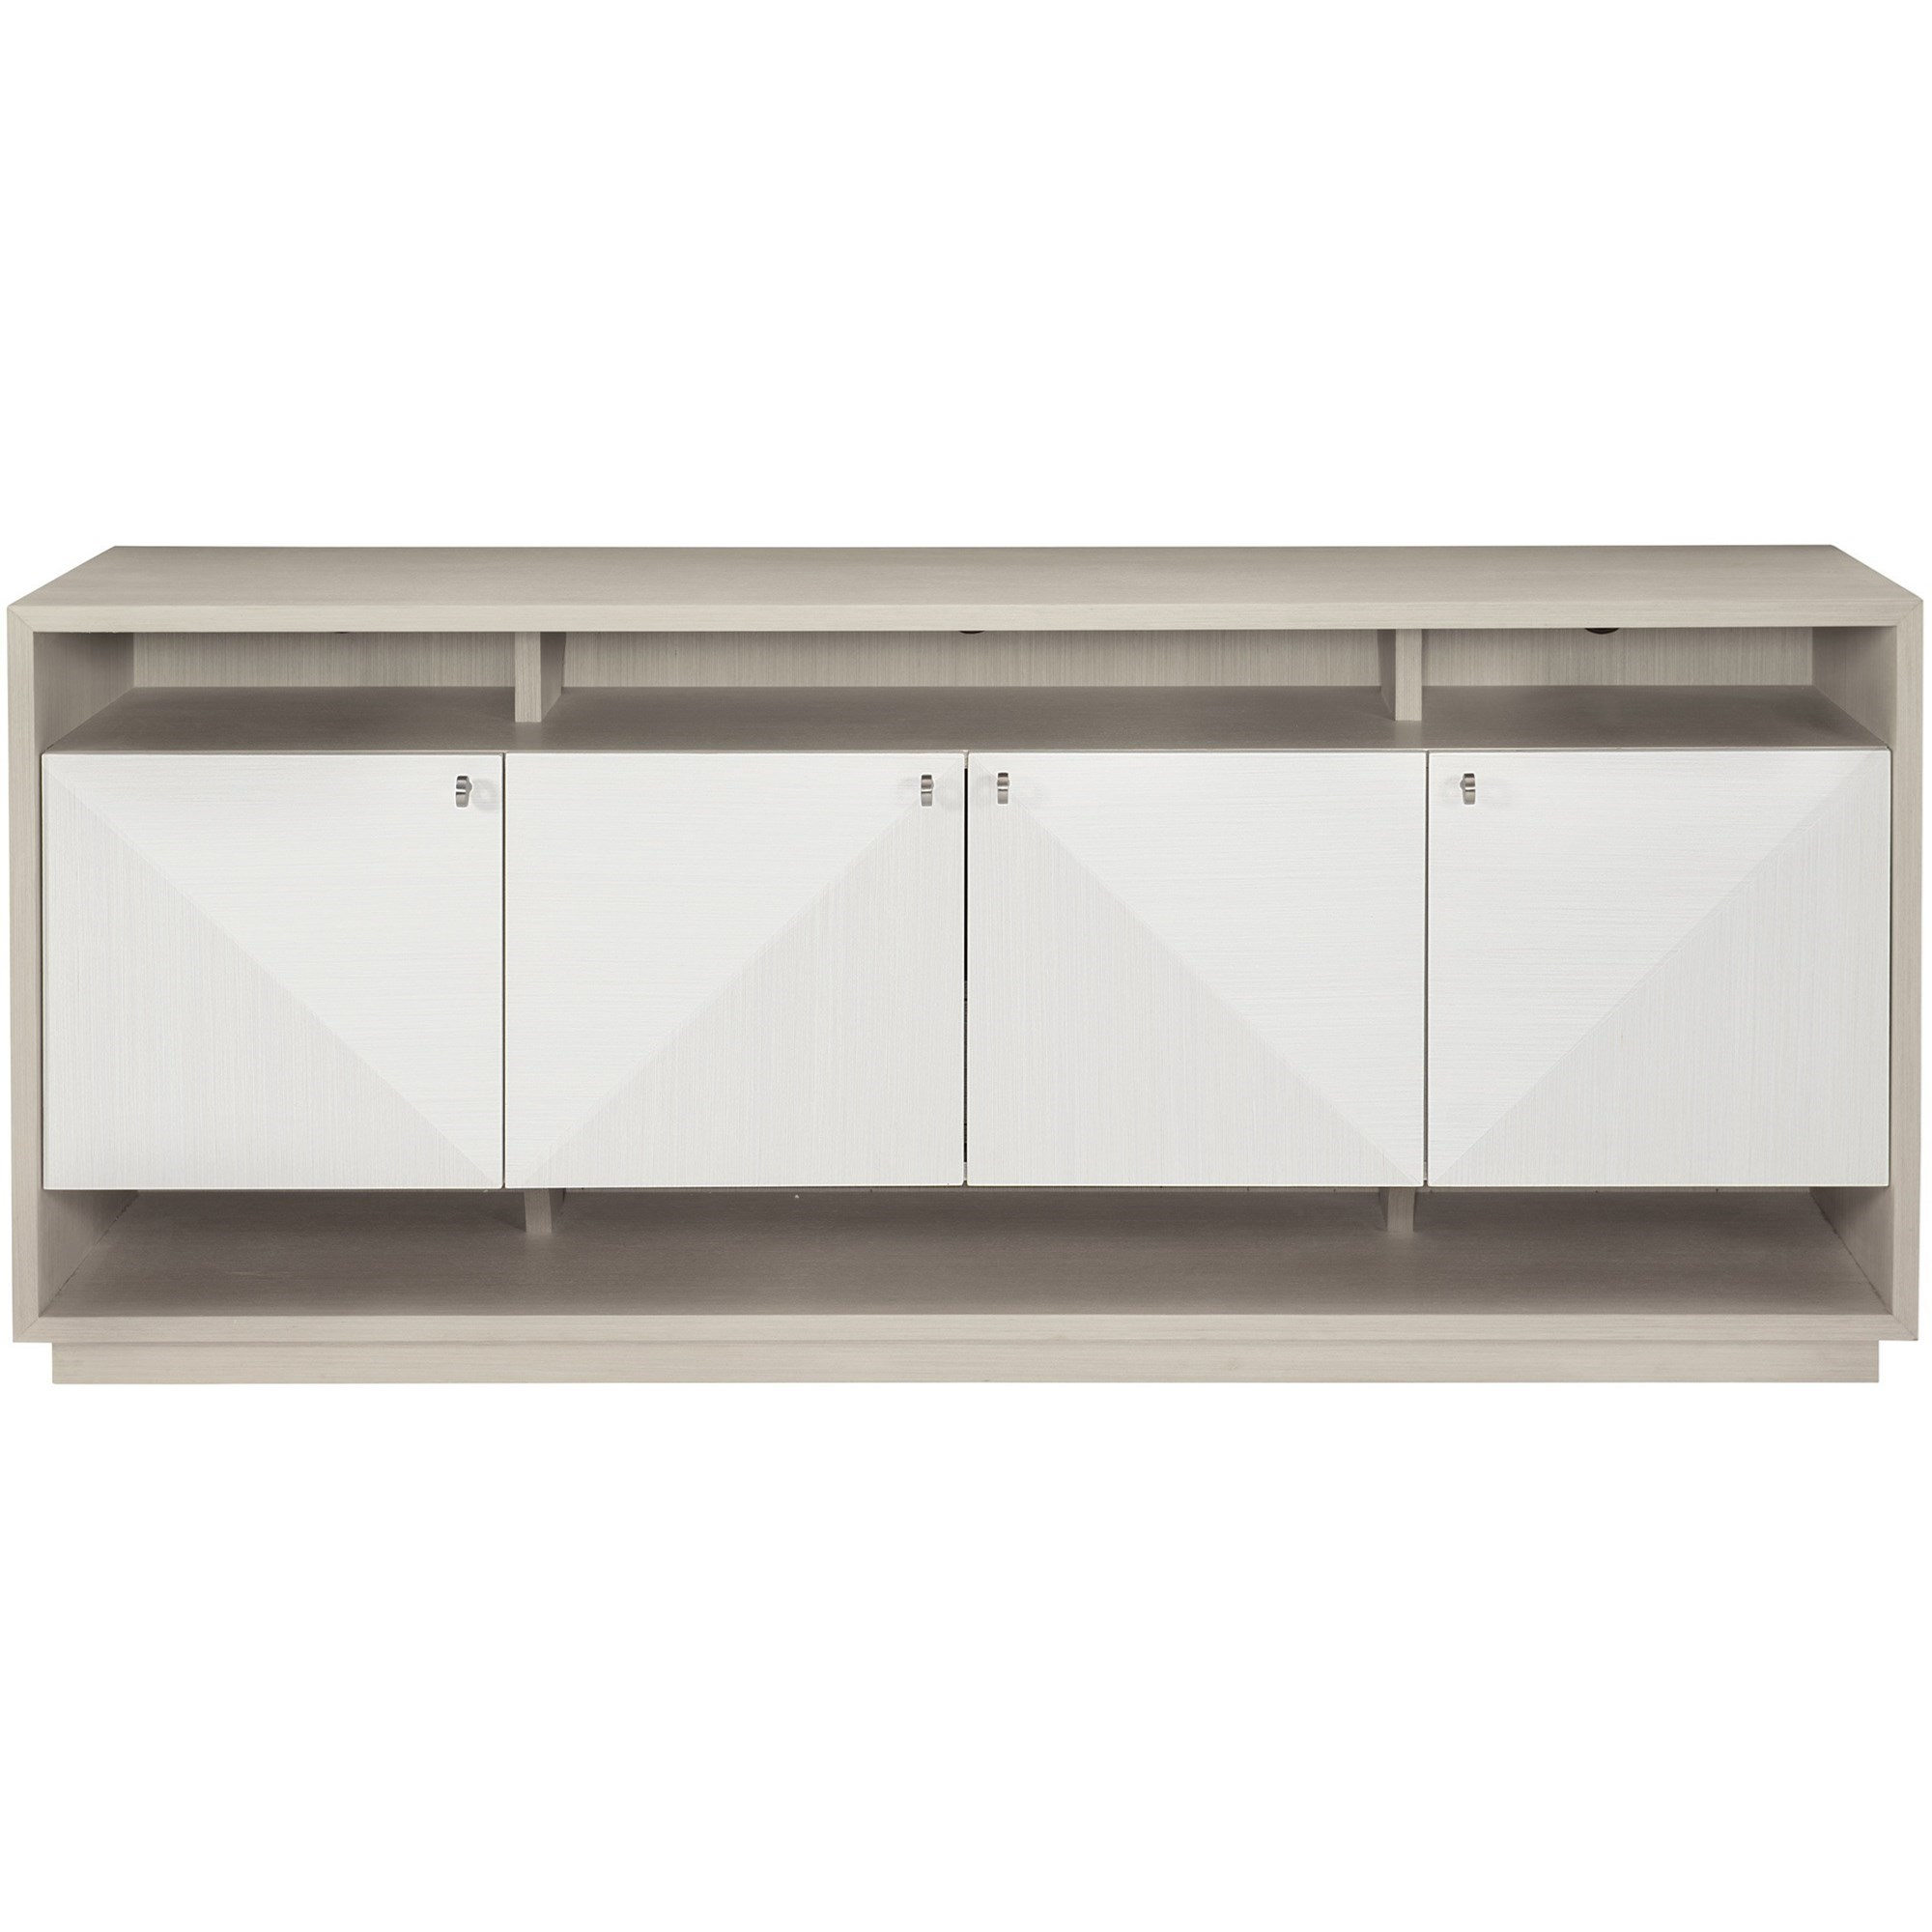 Axiom Entertainment Console by Bernhardt at Fisher Home Furnishings